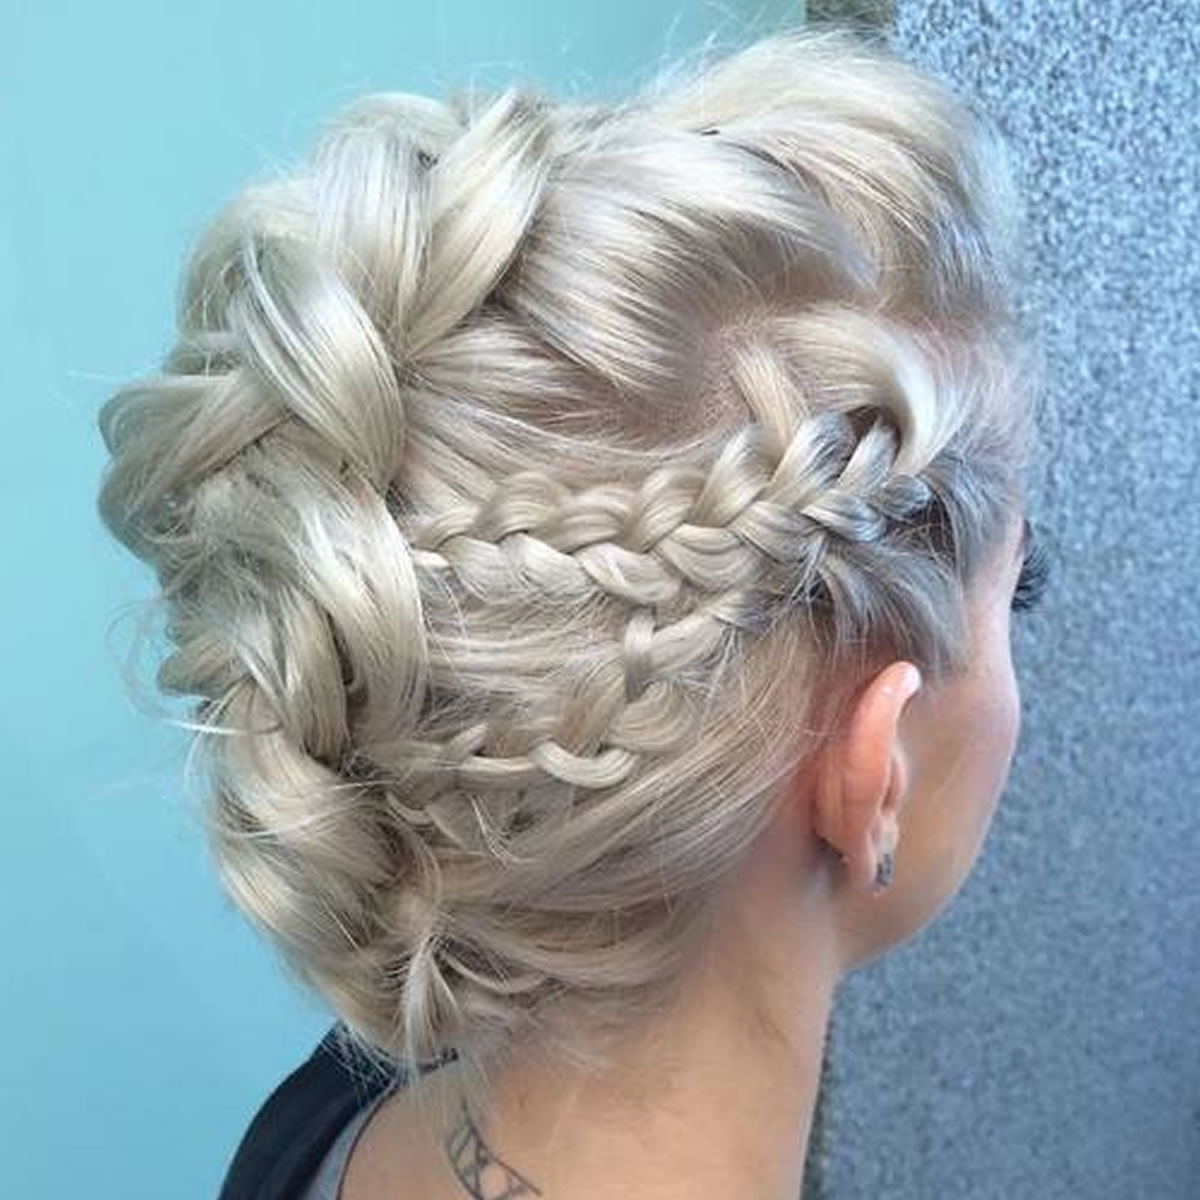 30 Glamorous Braided Mohawk Hairstyles For Girls And Women – Page 5 Intended For Trendy Platinum Braided Updo Blonde Hairstyles (View 5 of 20)